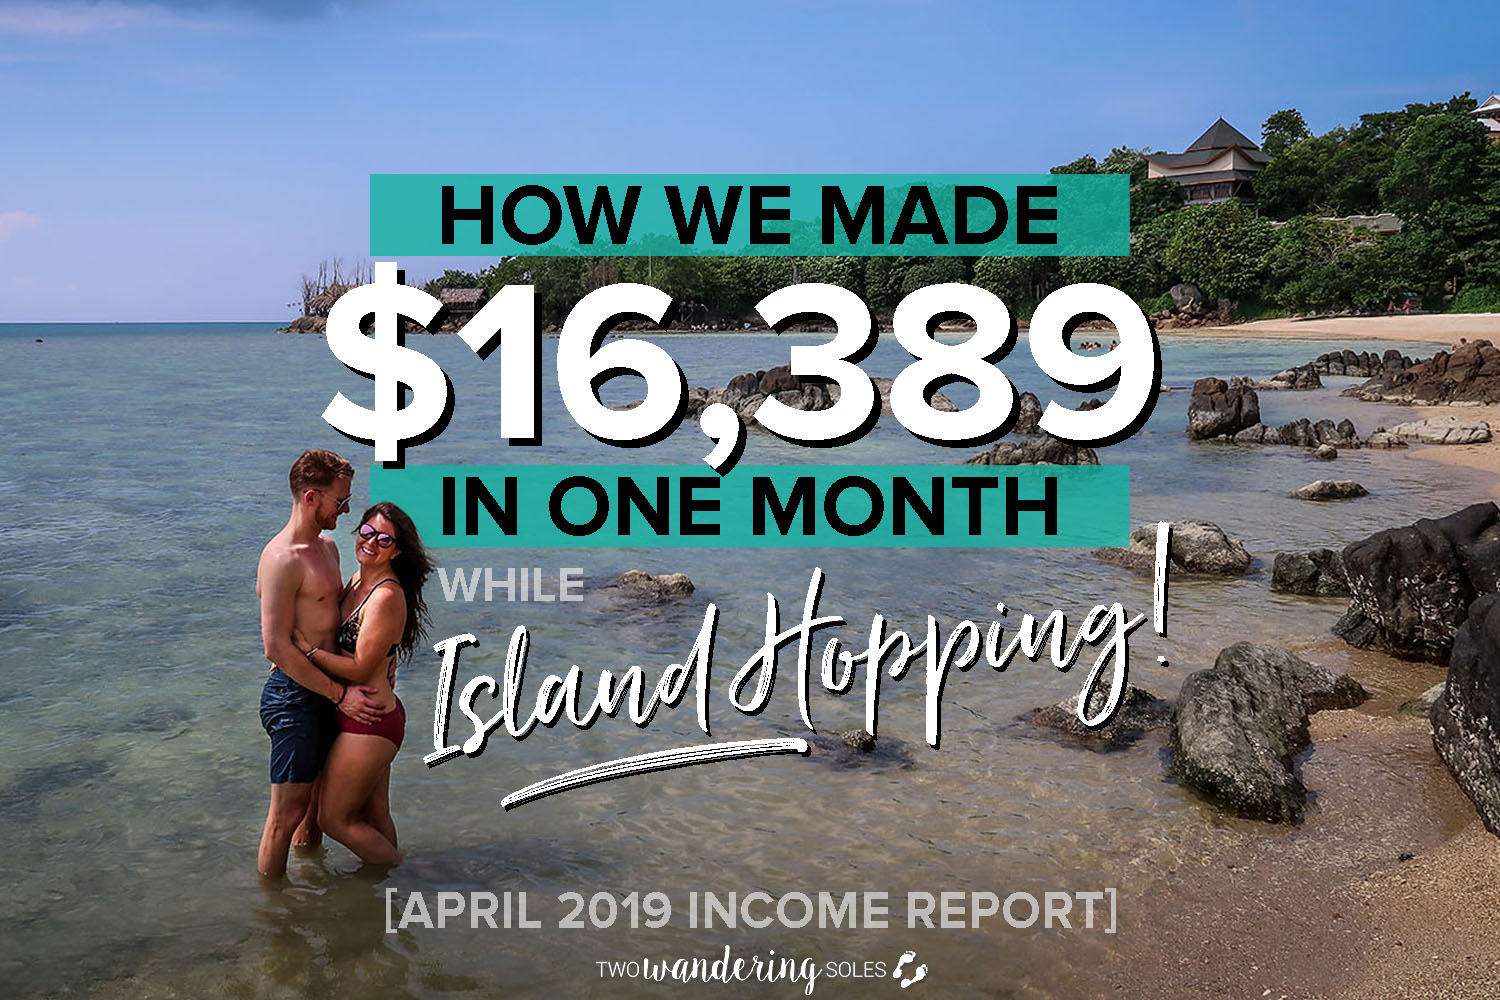 Travel Blog Income Reprot